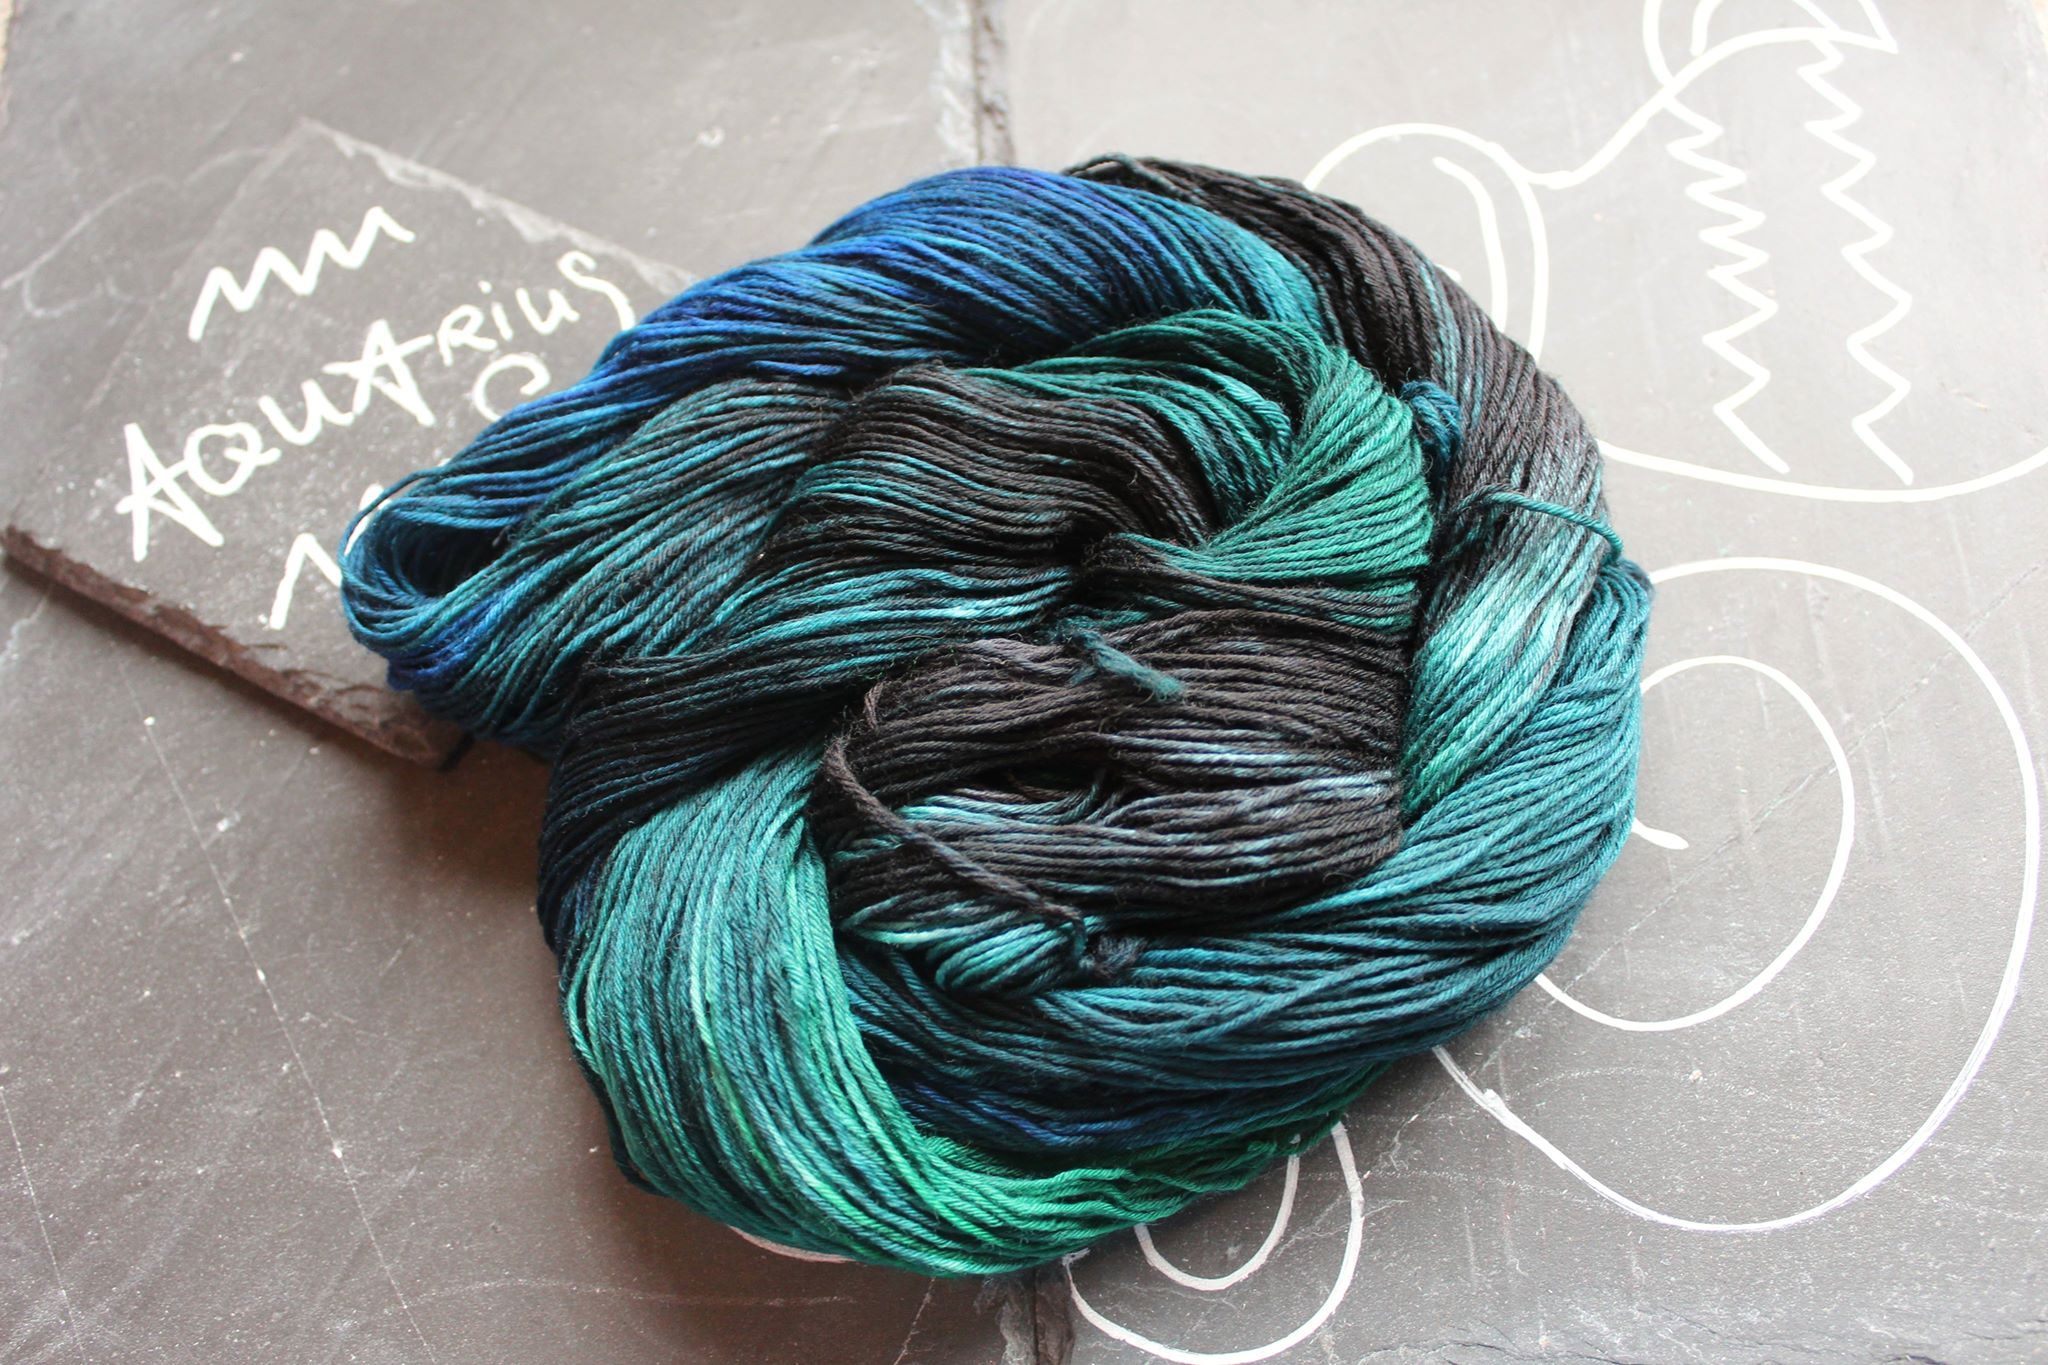 Aquarius Pure Merino